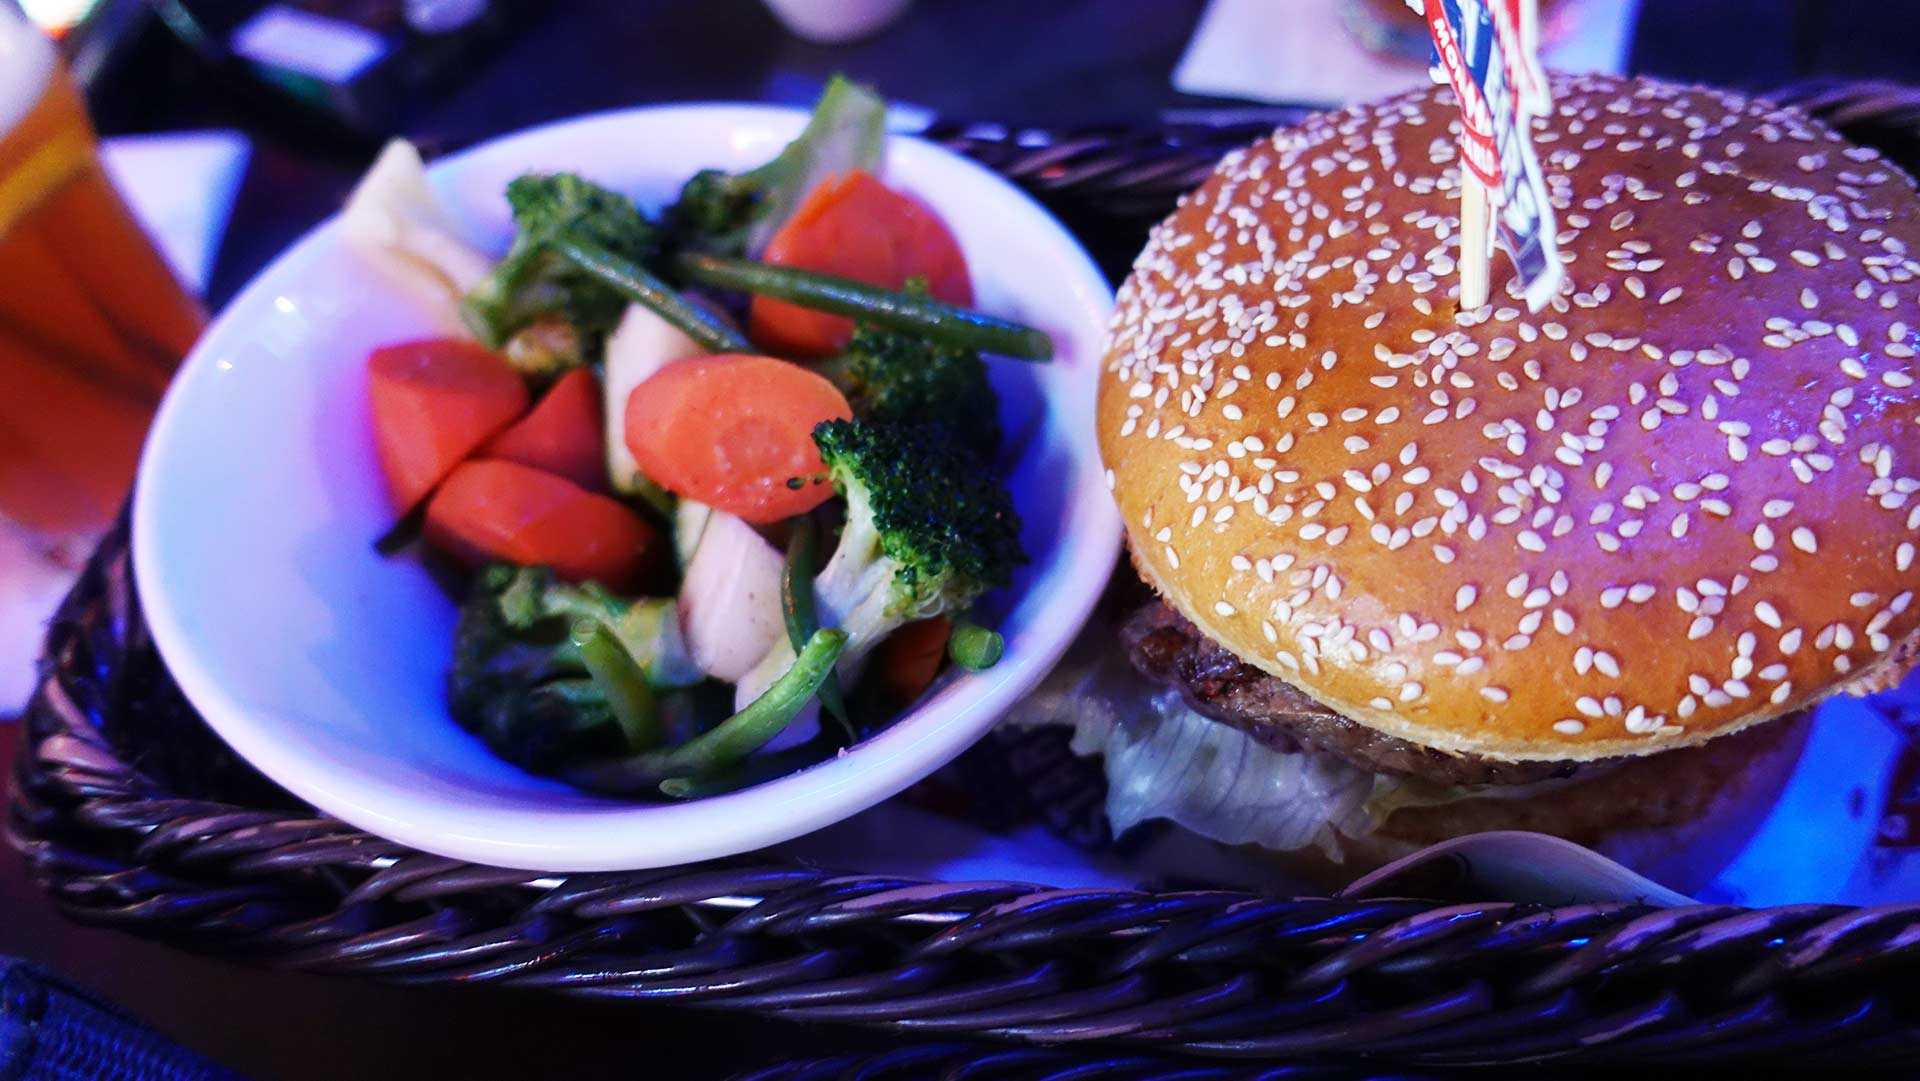 Stars N Bars - Abu Dhabi, UAE - Beef Burger & Sauteed Vegetables